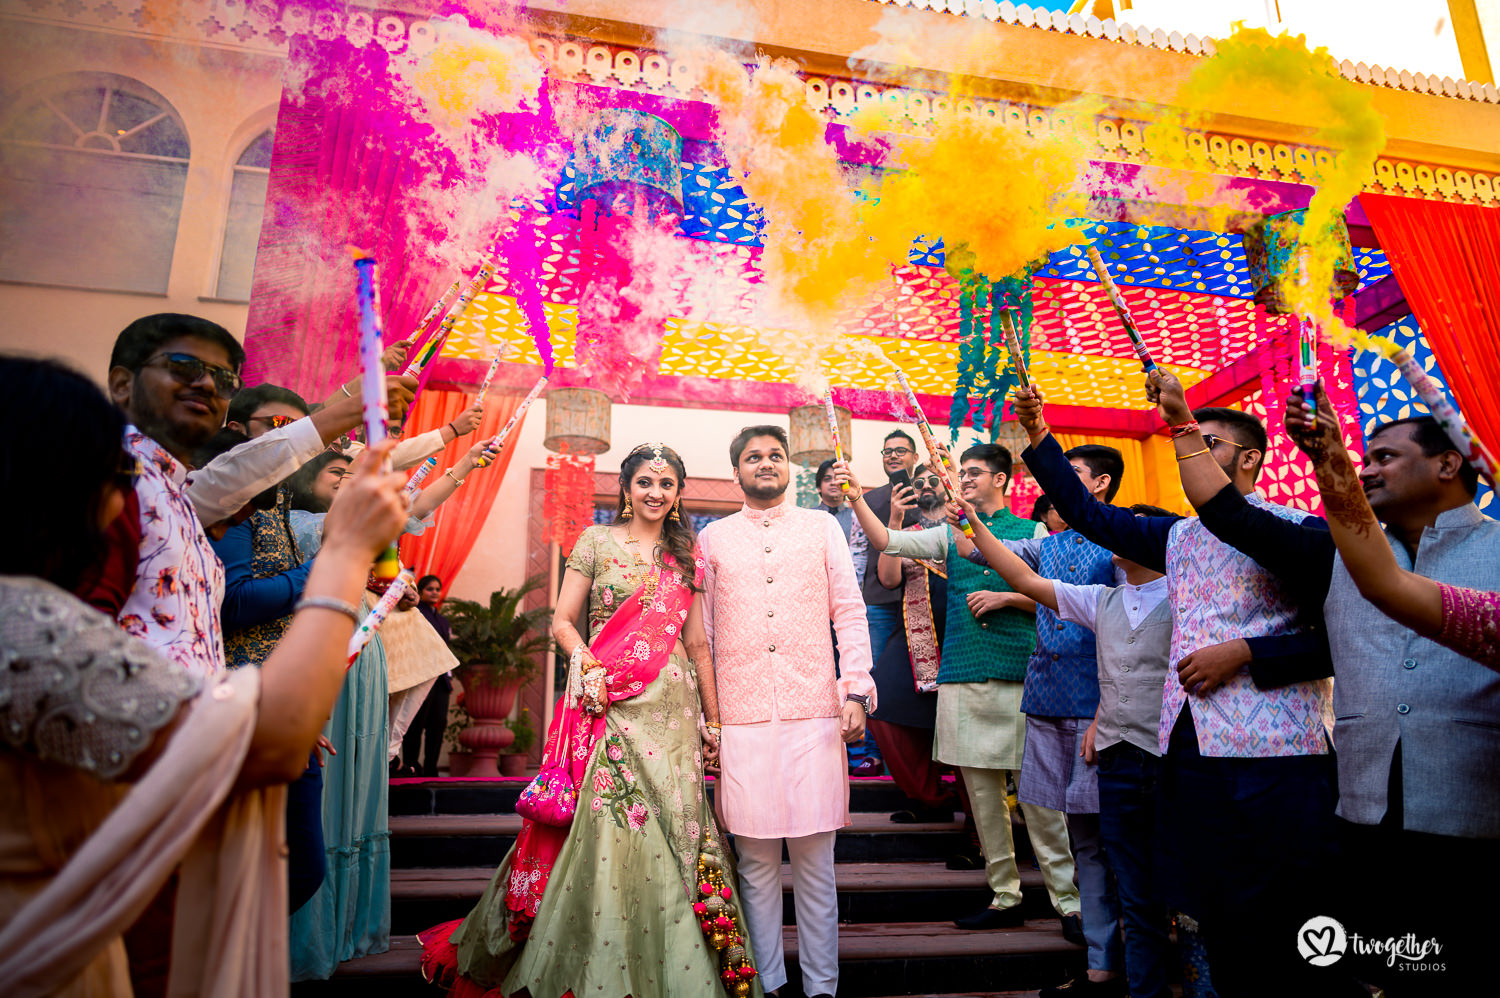 Couple entry in Jaipur destination wedding.